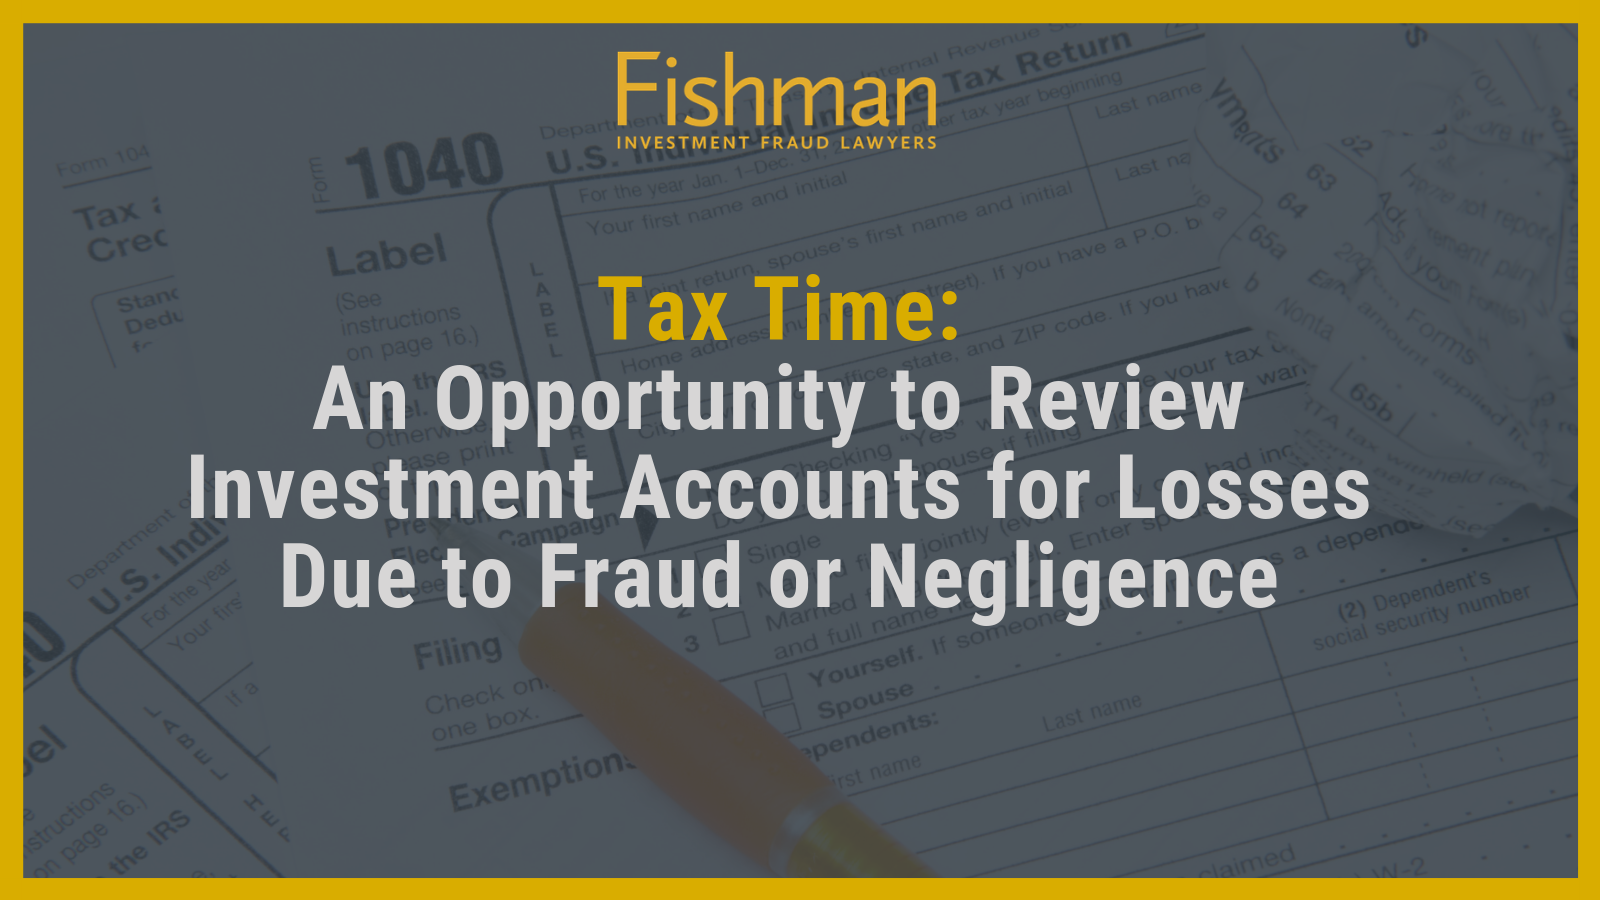 Tax Time - An Opportunity to Review Investment Accounts for Losses Due to Fraud or Negligence - Fishman Haygood - new orleans la